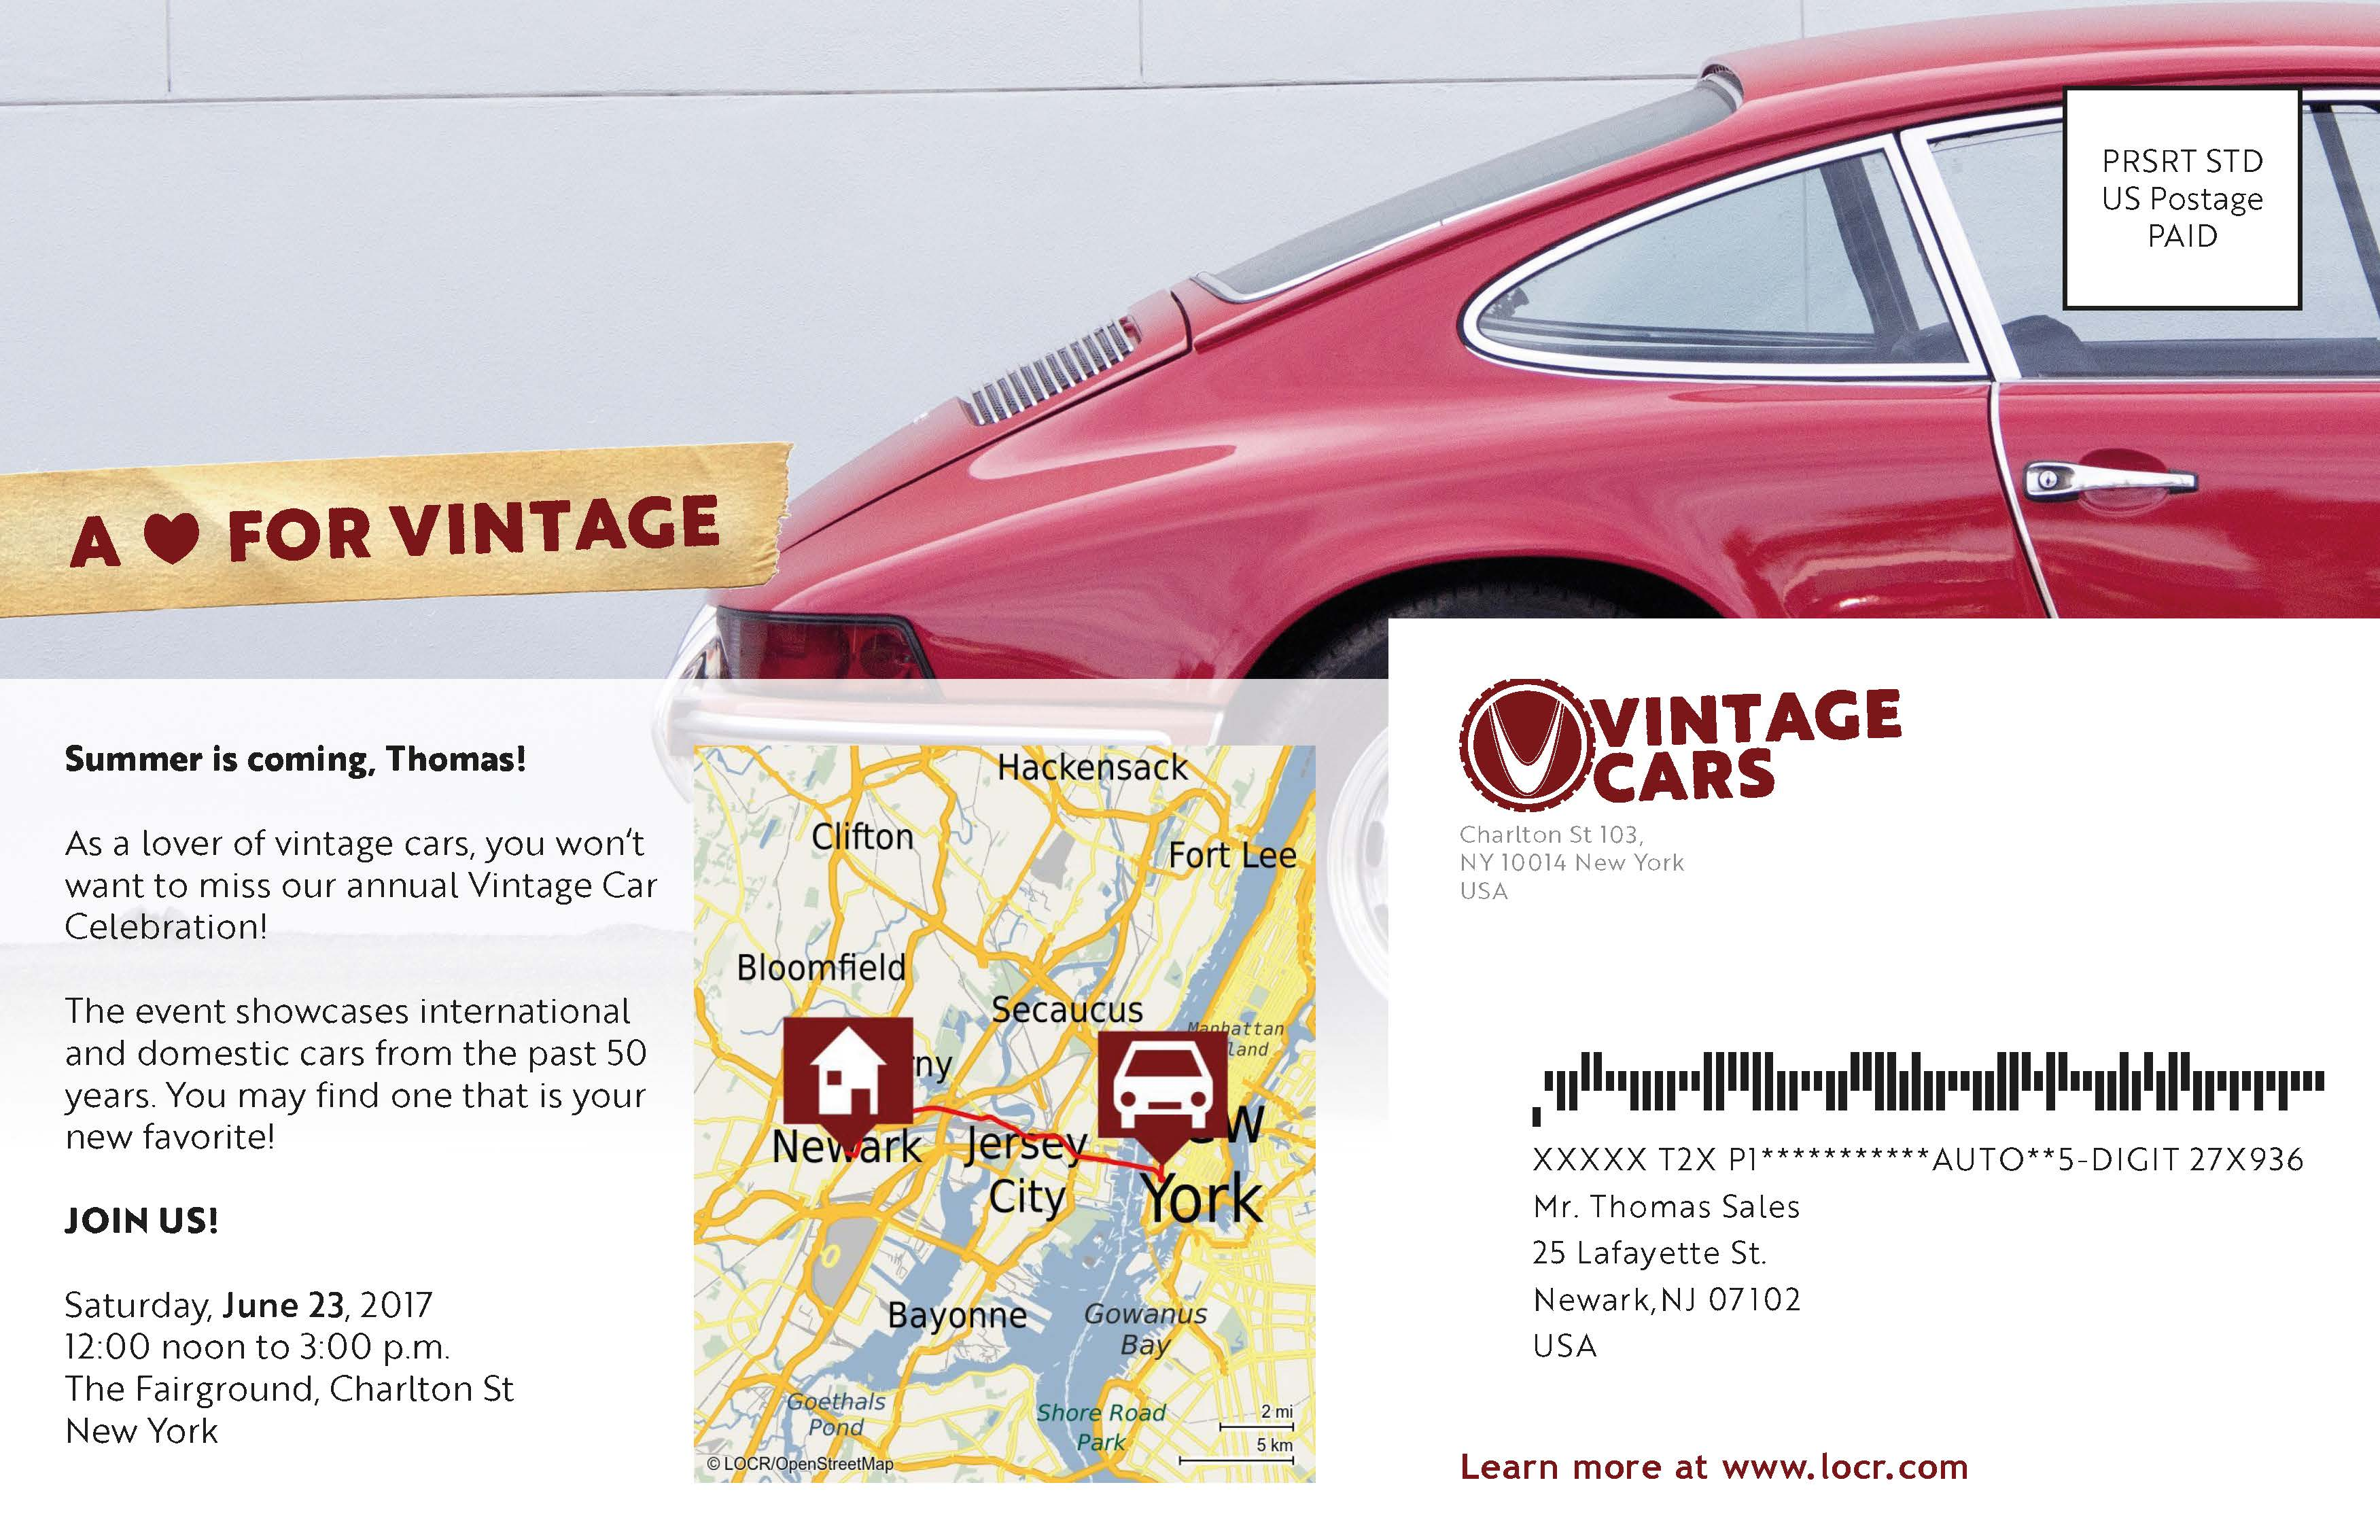 Creative Automotive Event Invitation With Personalized Maps From locr